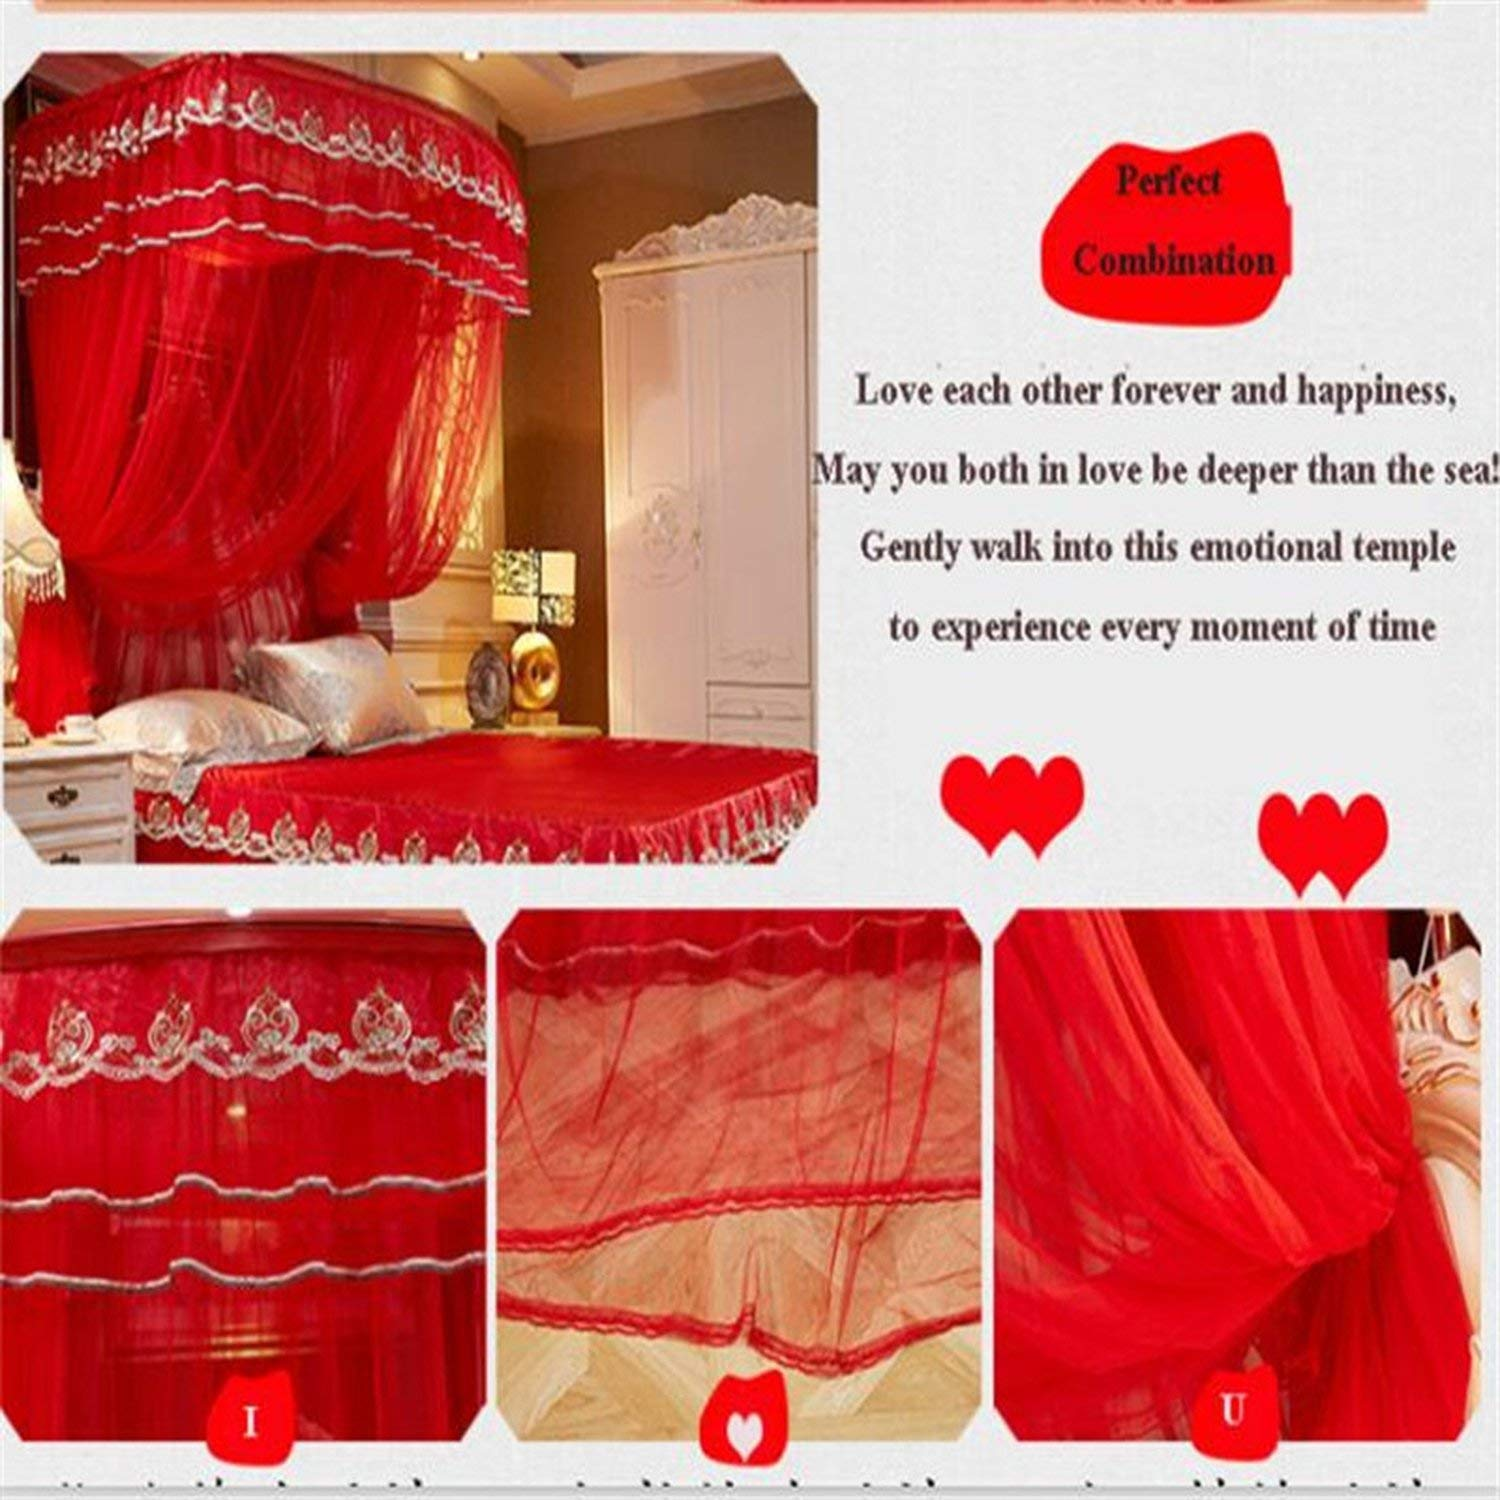 Fishing Rod Retractable Three Door Palace Mosquito Net Floor Standing Anti Mosquito Wedding Nets,Wedding Red Color,1.8Mwx2Mlx2.1Mh by special shine-shop mosquito net (Image #2)